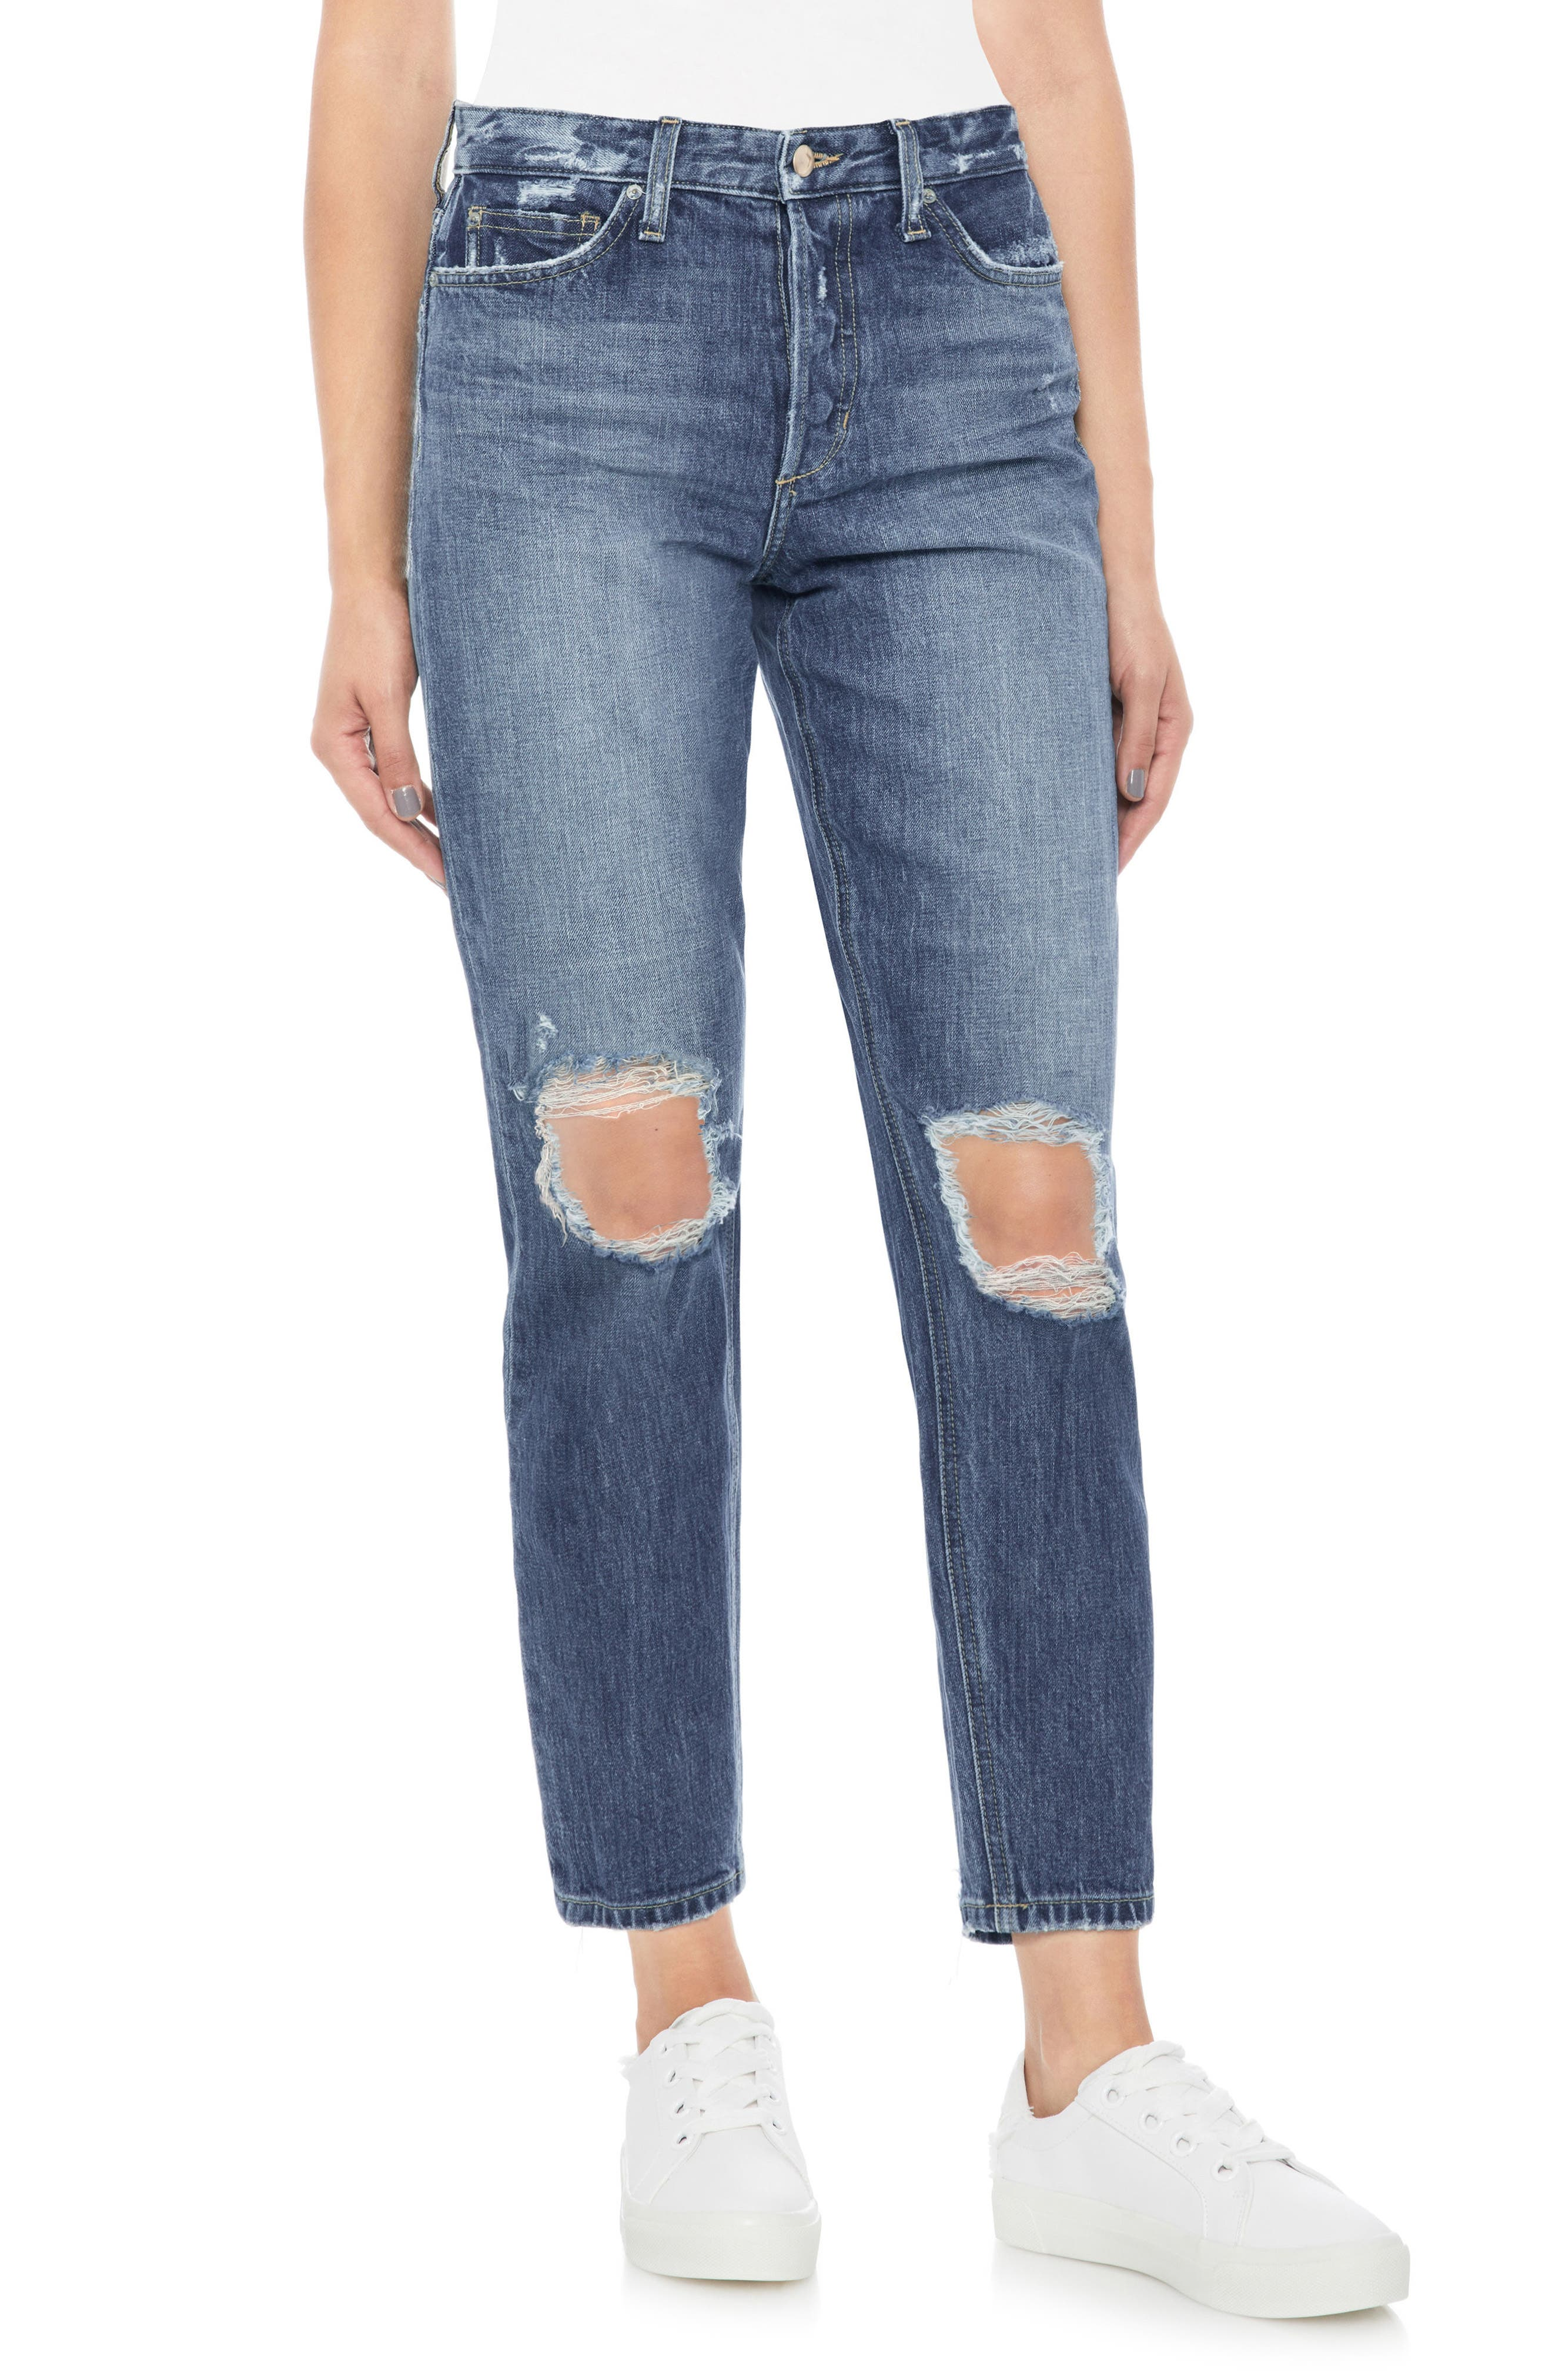 Smith Ripped High Waist Ankle Jeans,                         Main,                         color, LANNAH